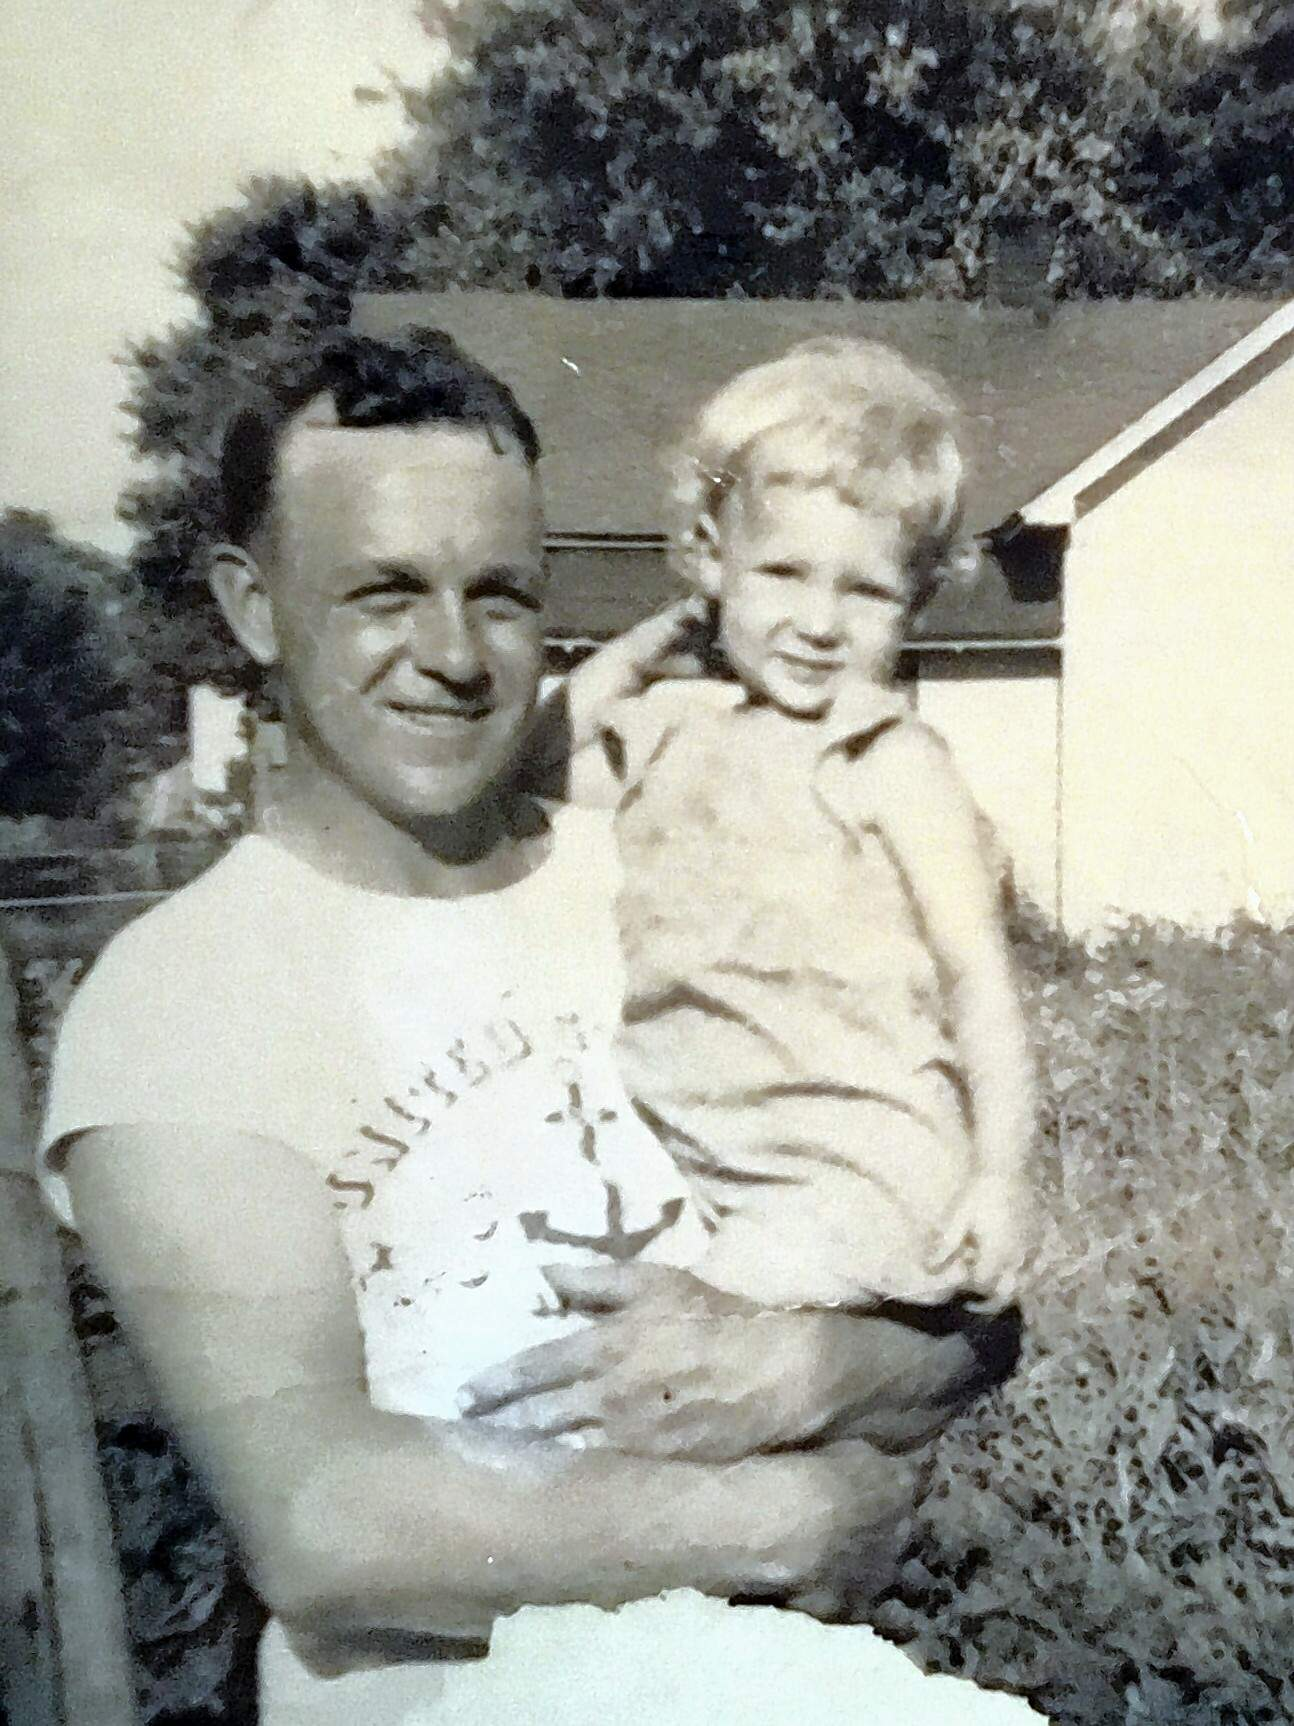 Arthur Keller with his daughter, Phyllis, taken while he was home on leave from the U.S. Navy during World War II.